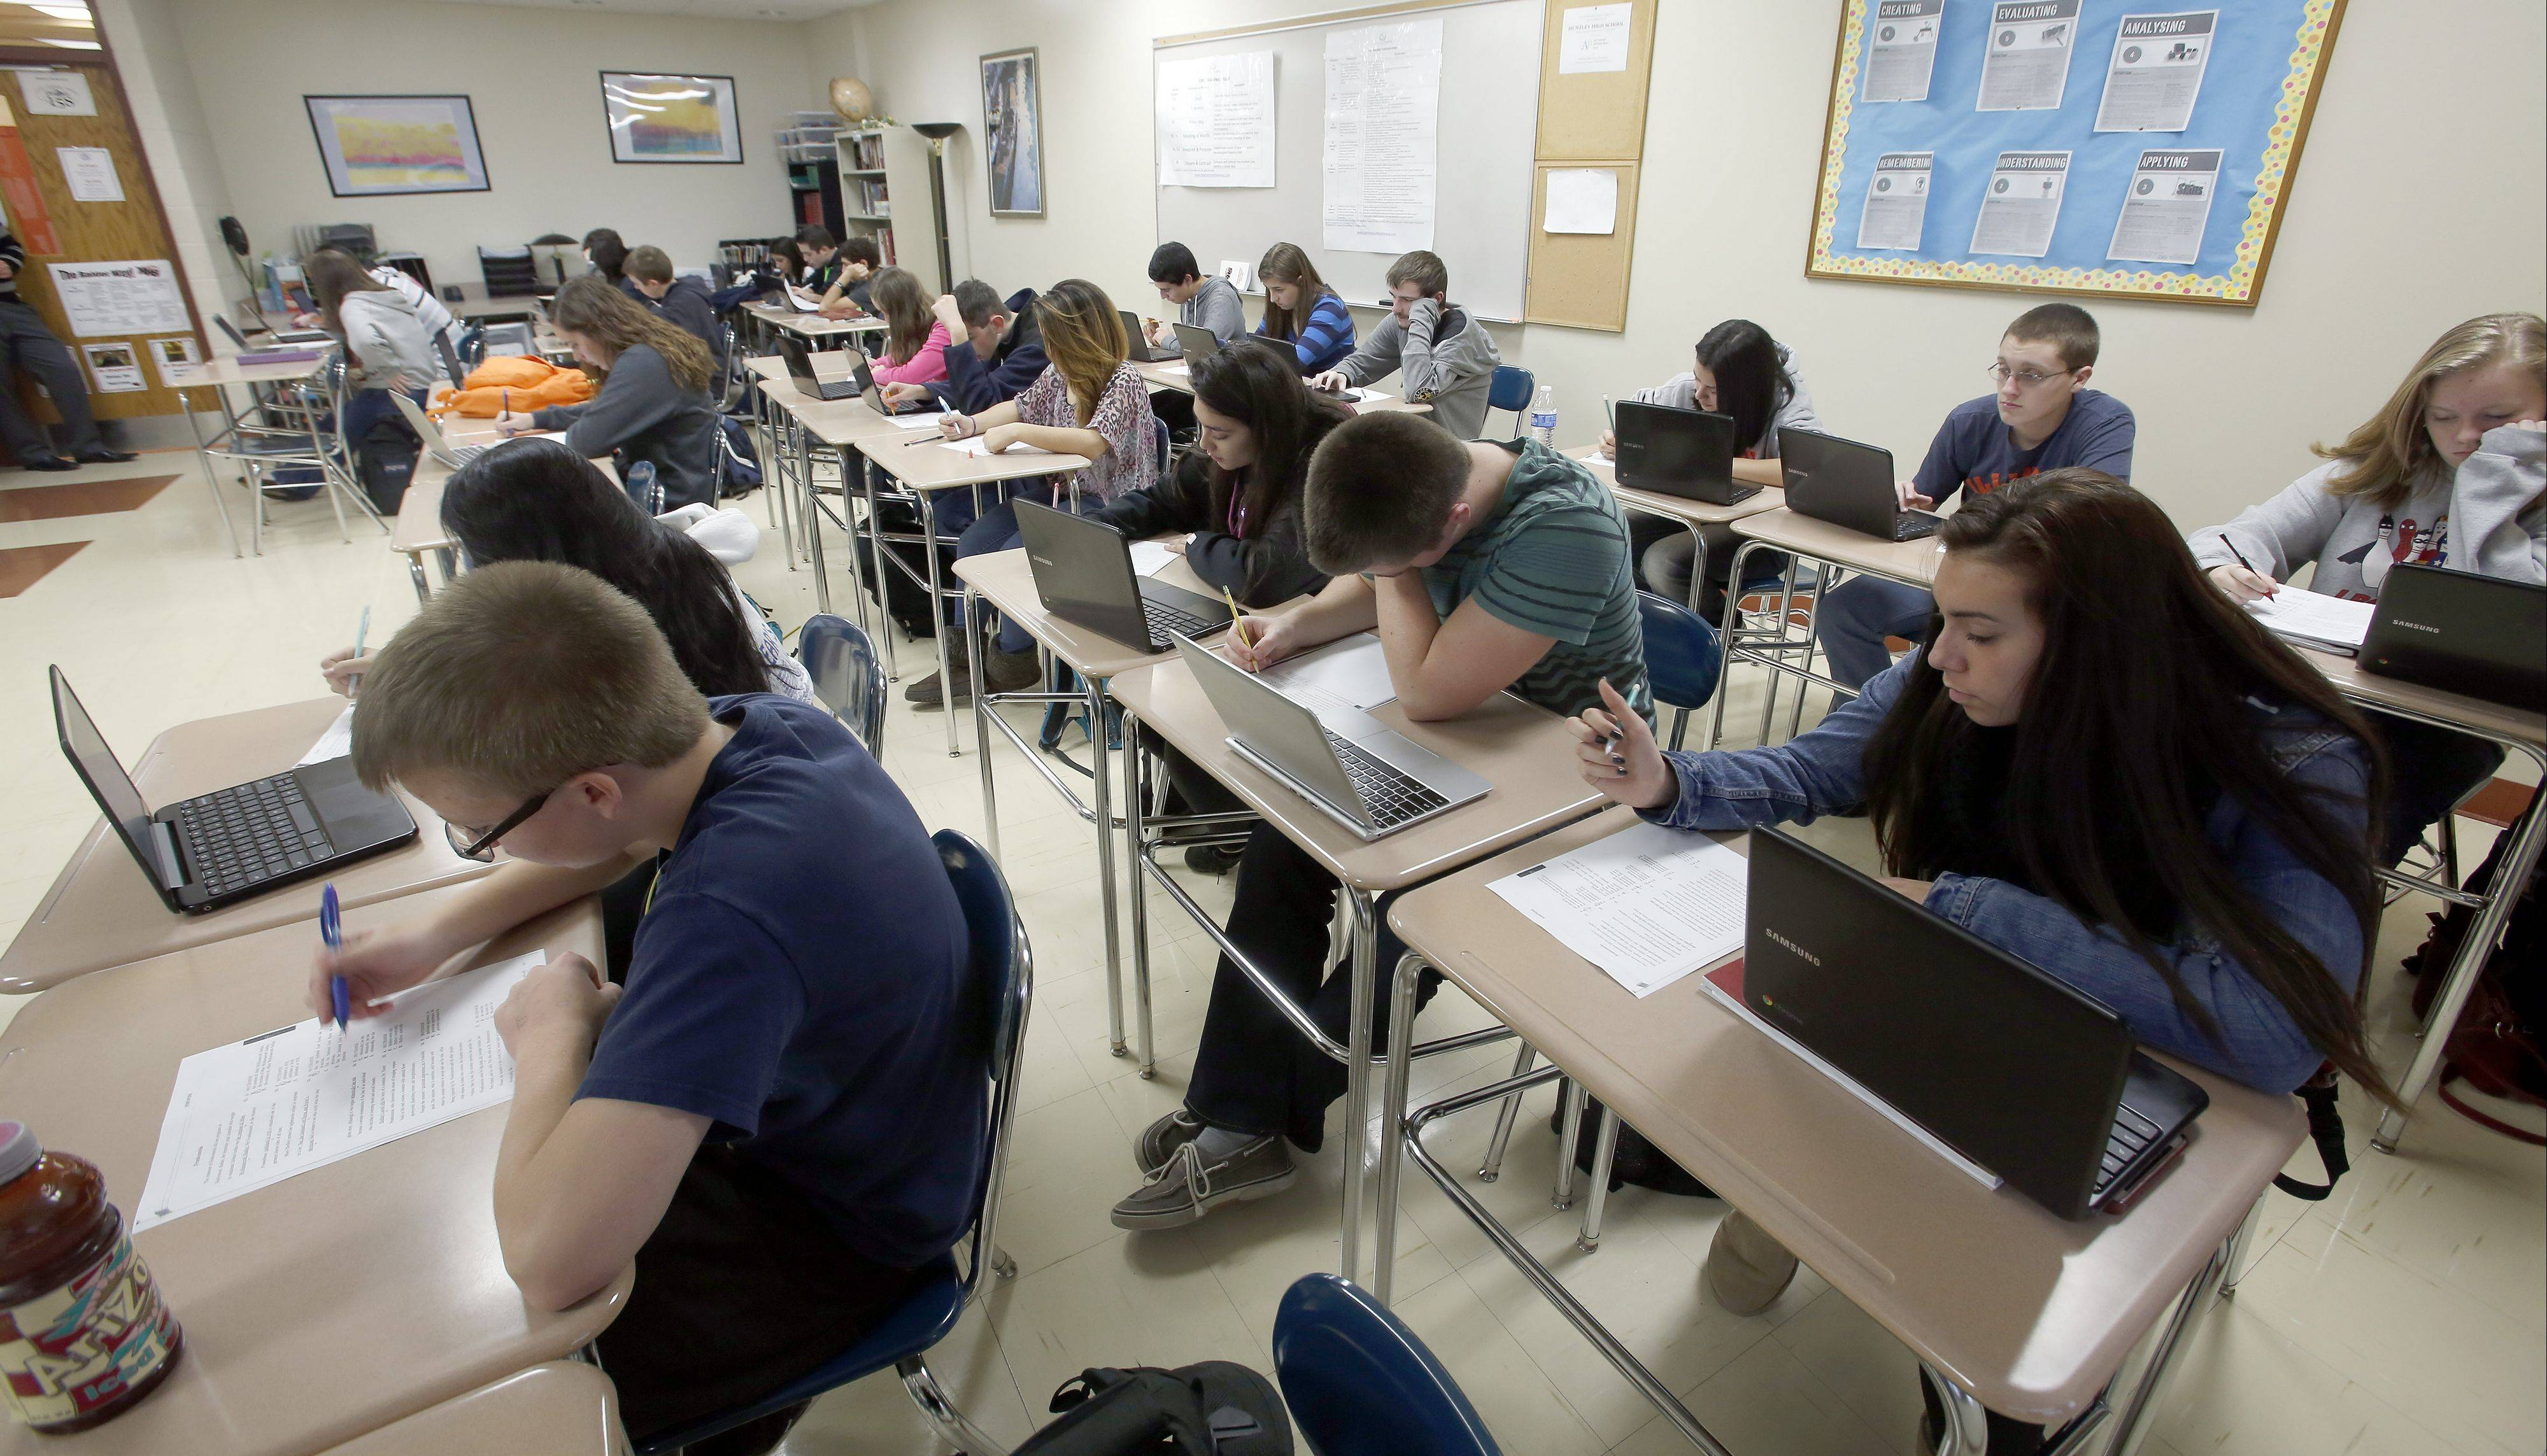 Students use Chromebooks during an English class at Huntley High School. The school's ACT composite score of 22.4 was the third highest in McHenry County in 2013 and nearly 67 percent of students tested were college ready.